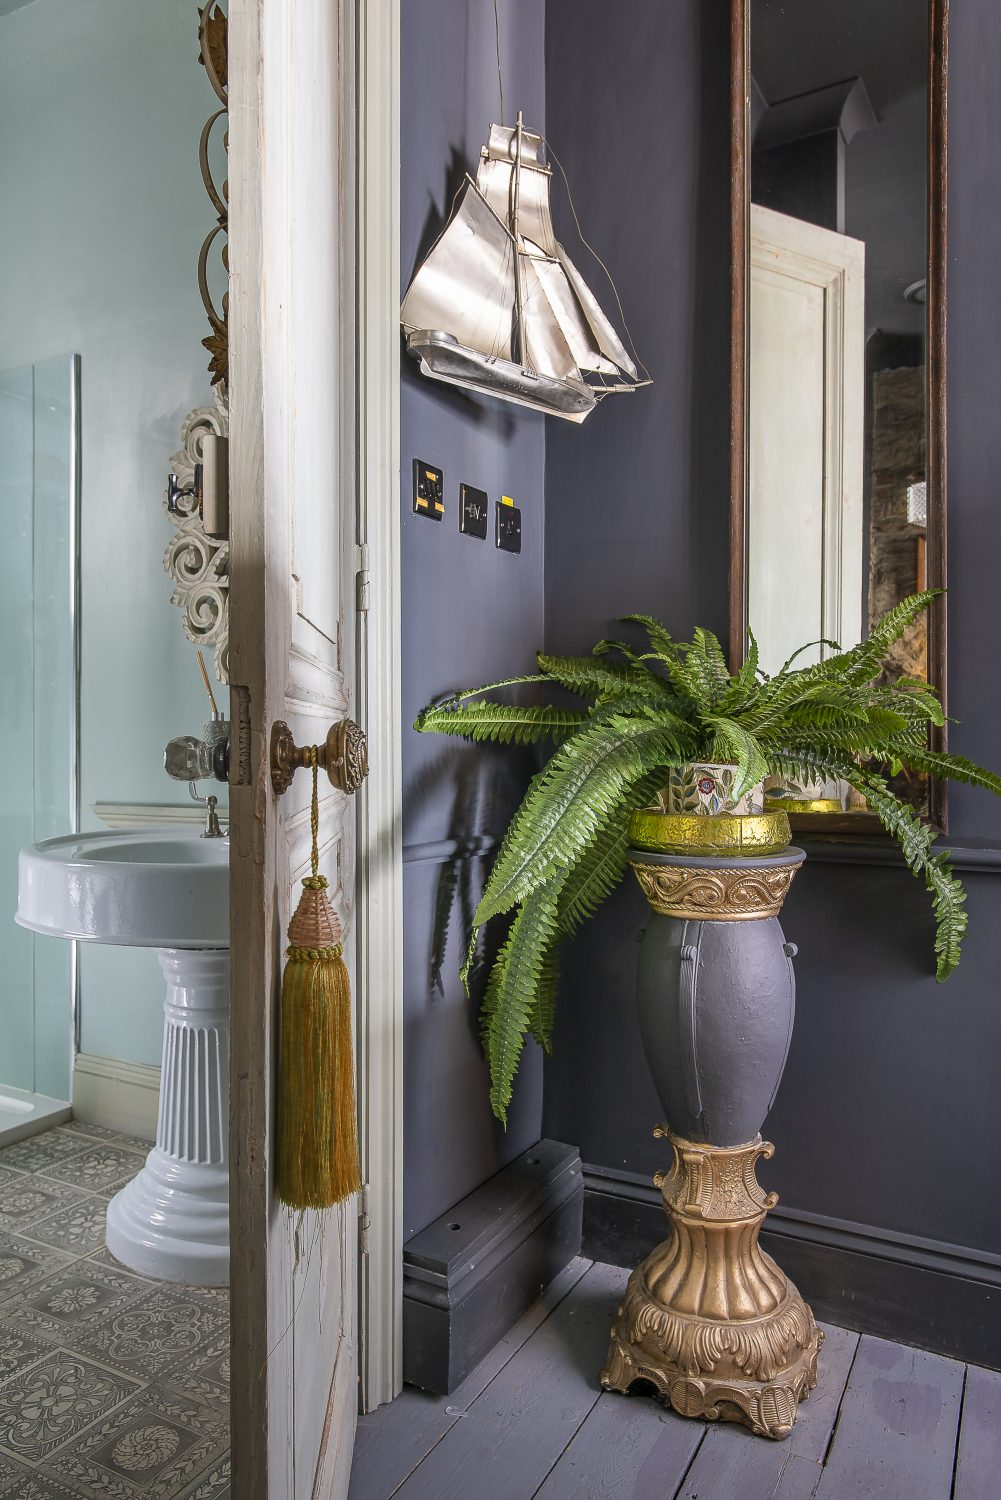 A chandelier from nationallighting.co.uk illuminates the sage green shower room, complete with an ornate pedestal basin